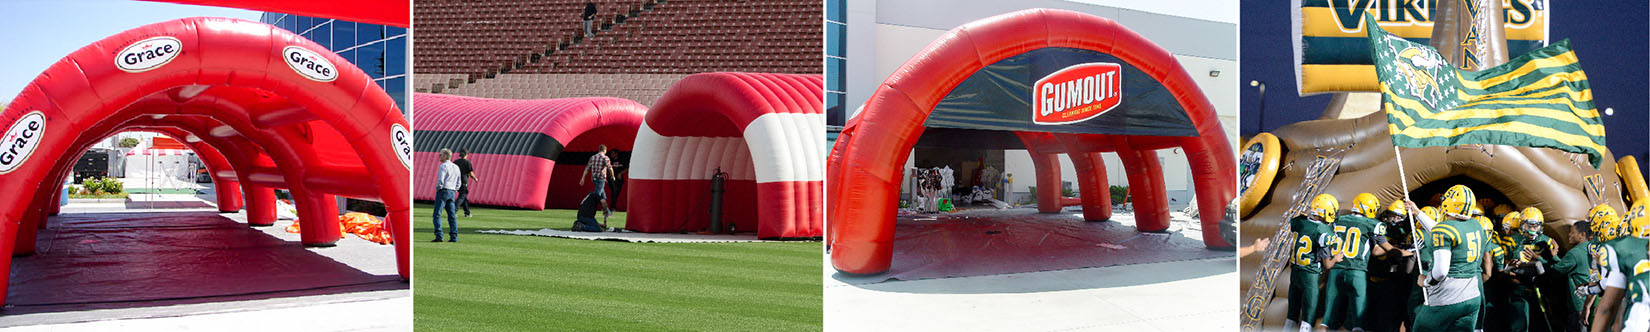 Grace foods, Verizon, T-Mobile, Gumout, High School Viking Ship custom inflatable tunnels collage